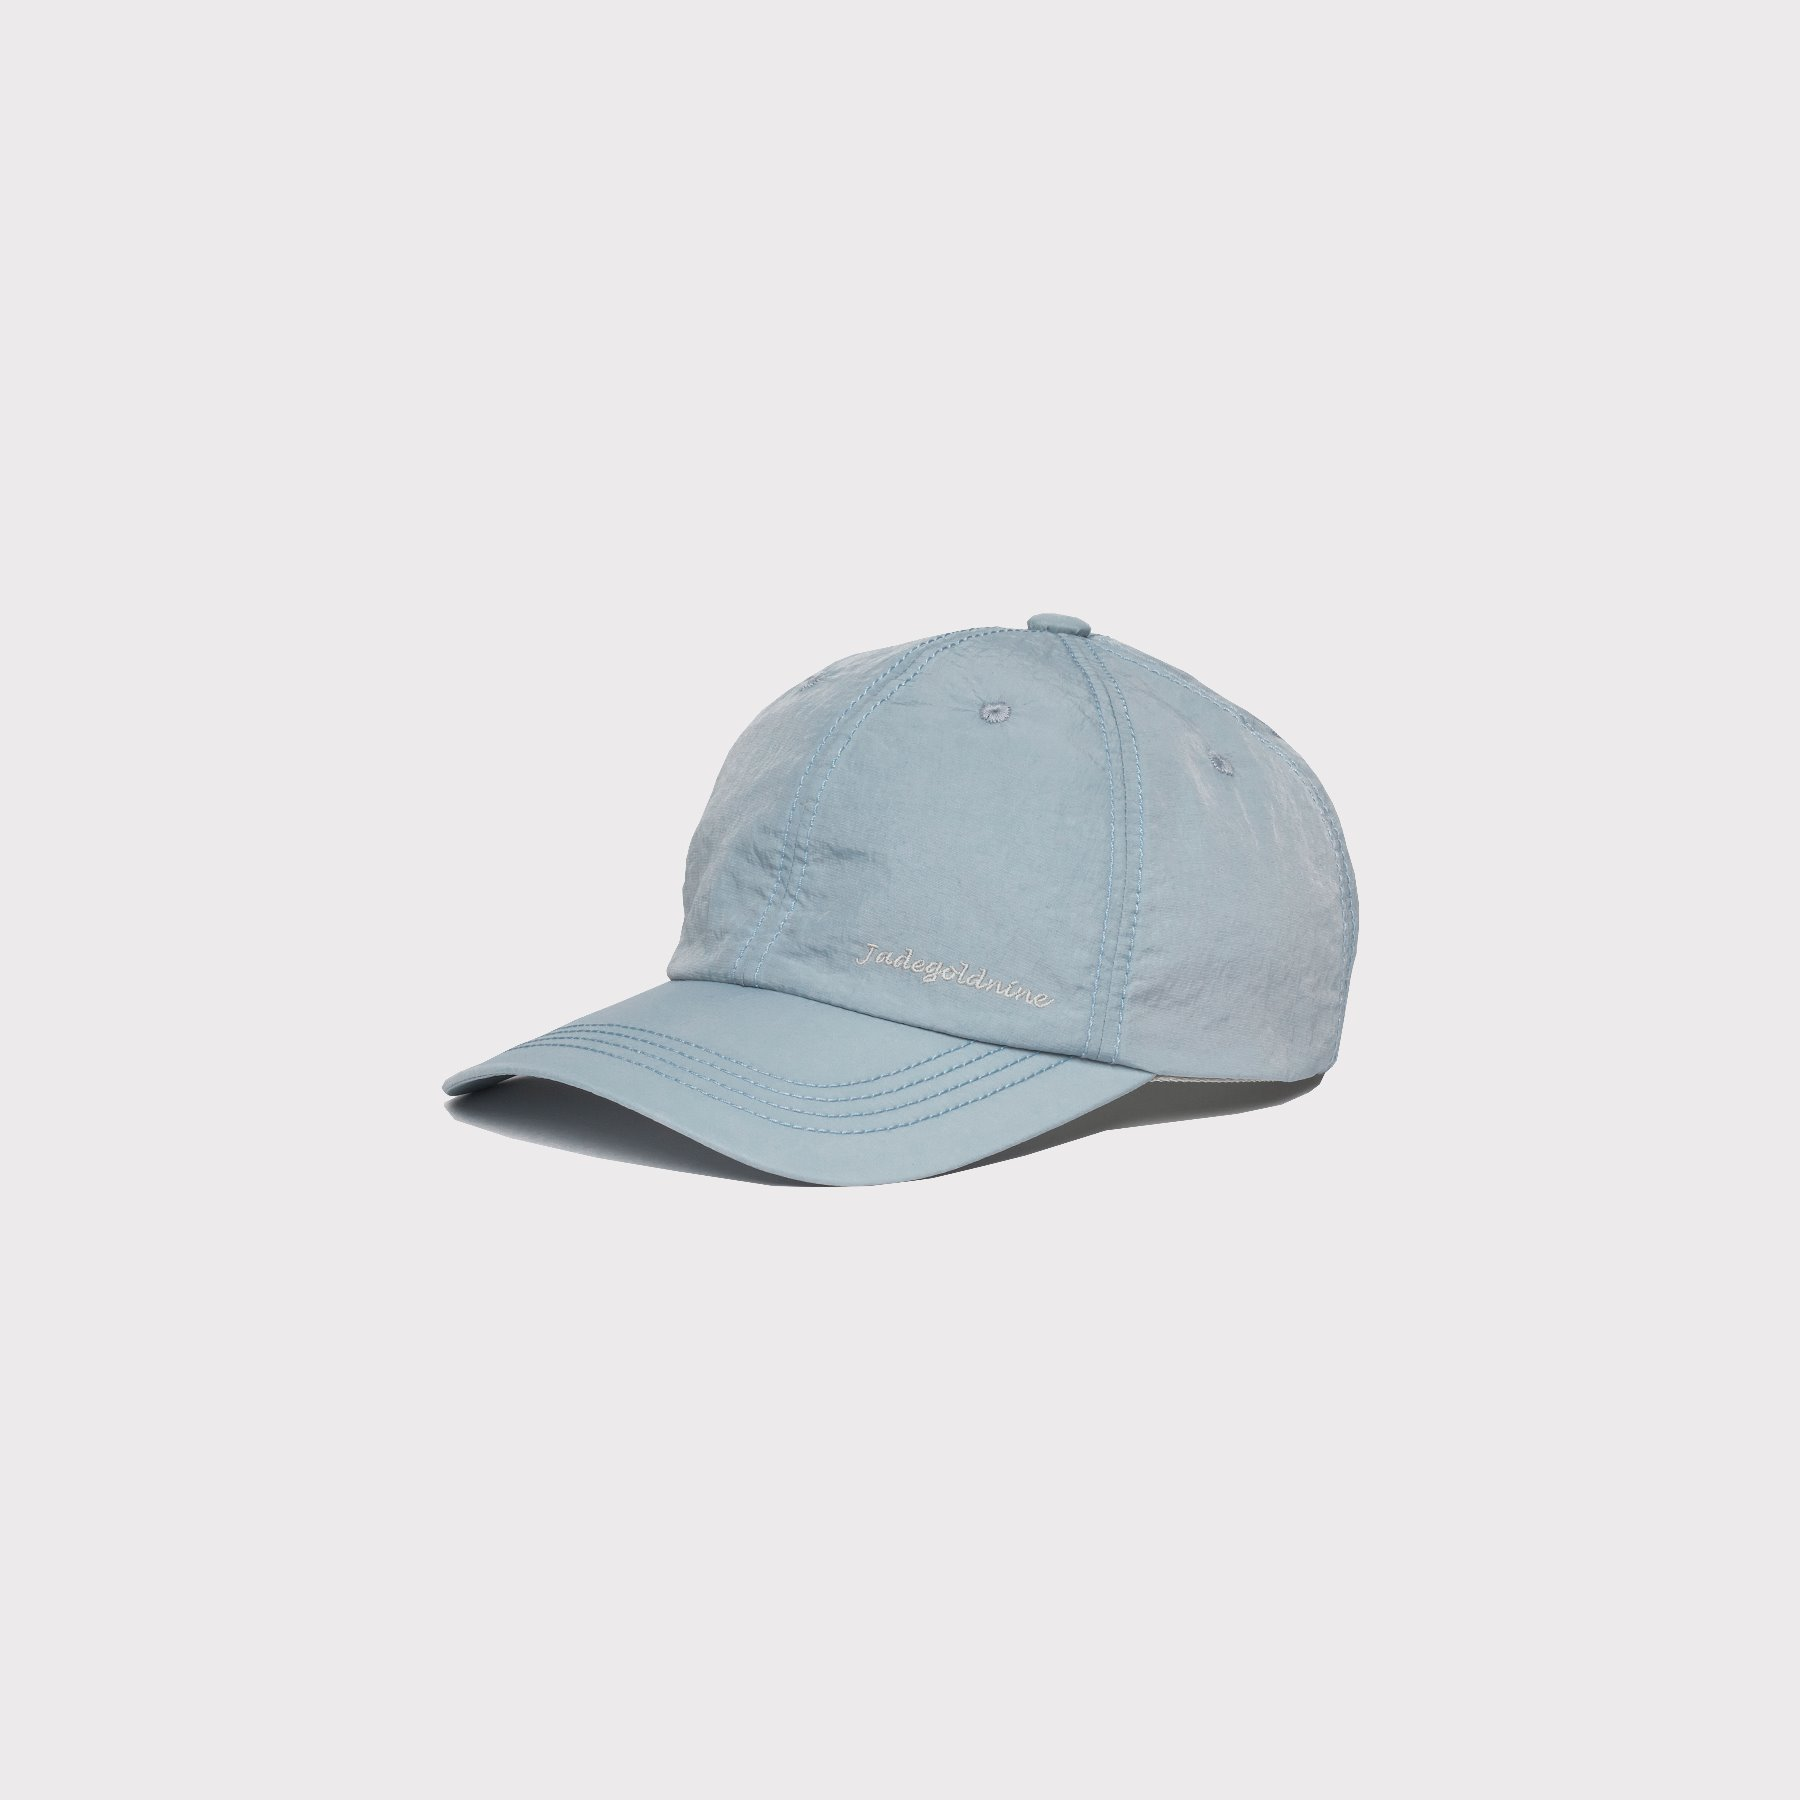 colorful cap (gray)